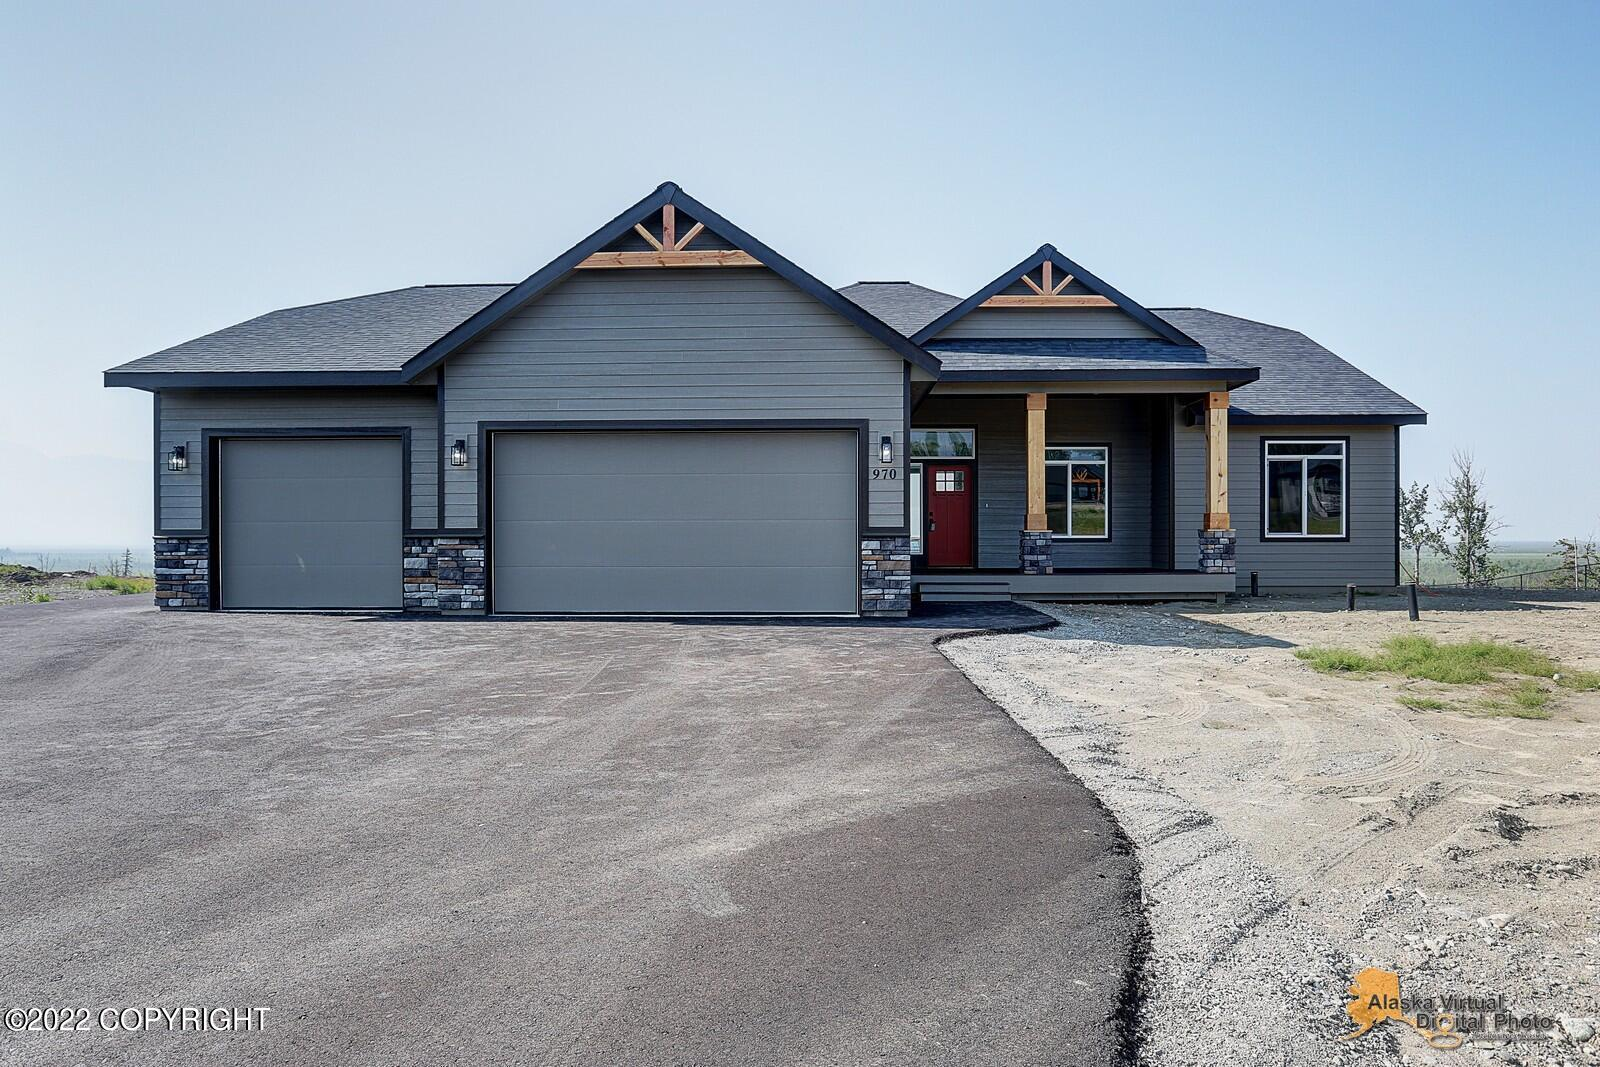 4-Bedroom House In Bluff View Acres